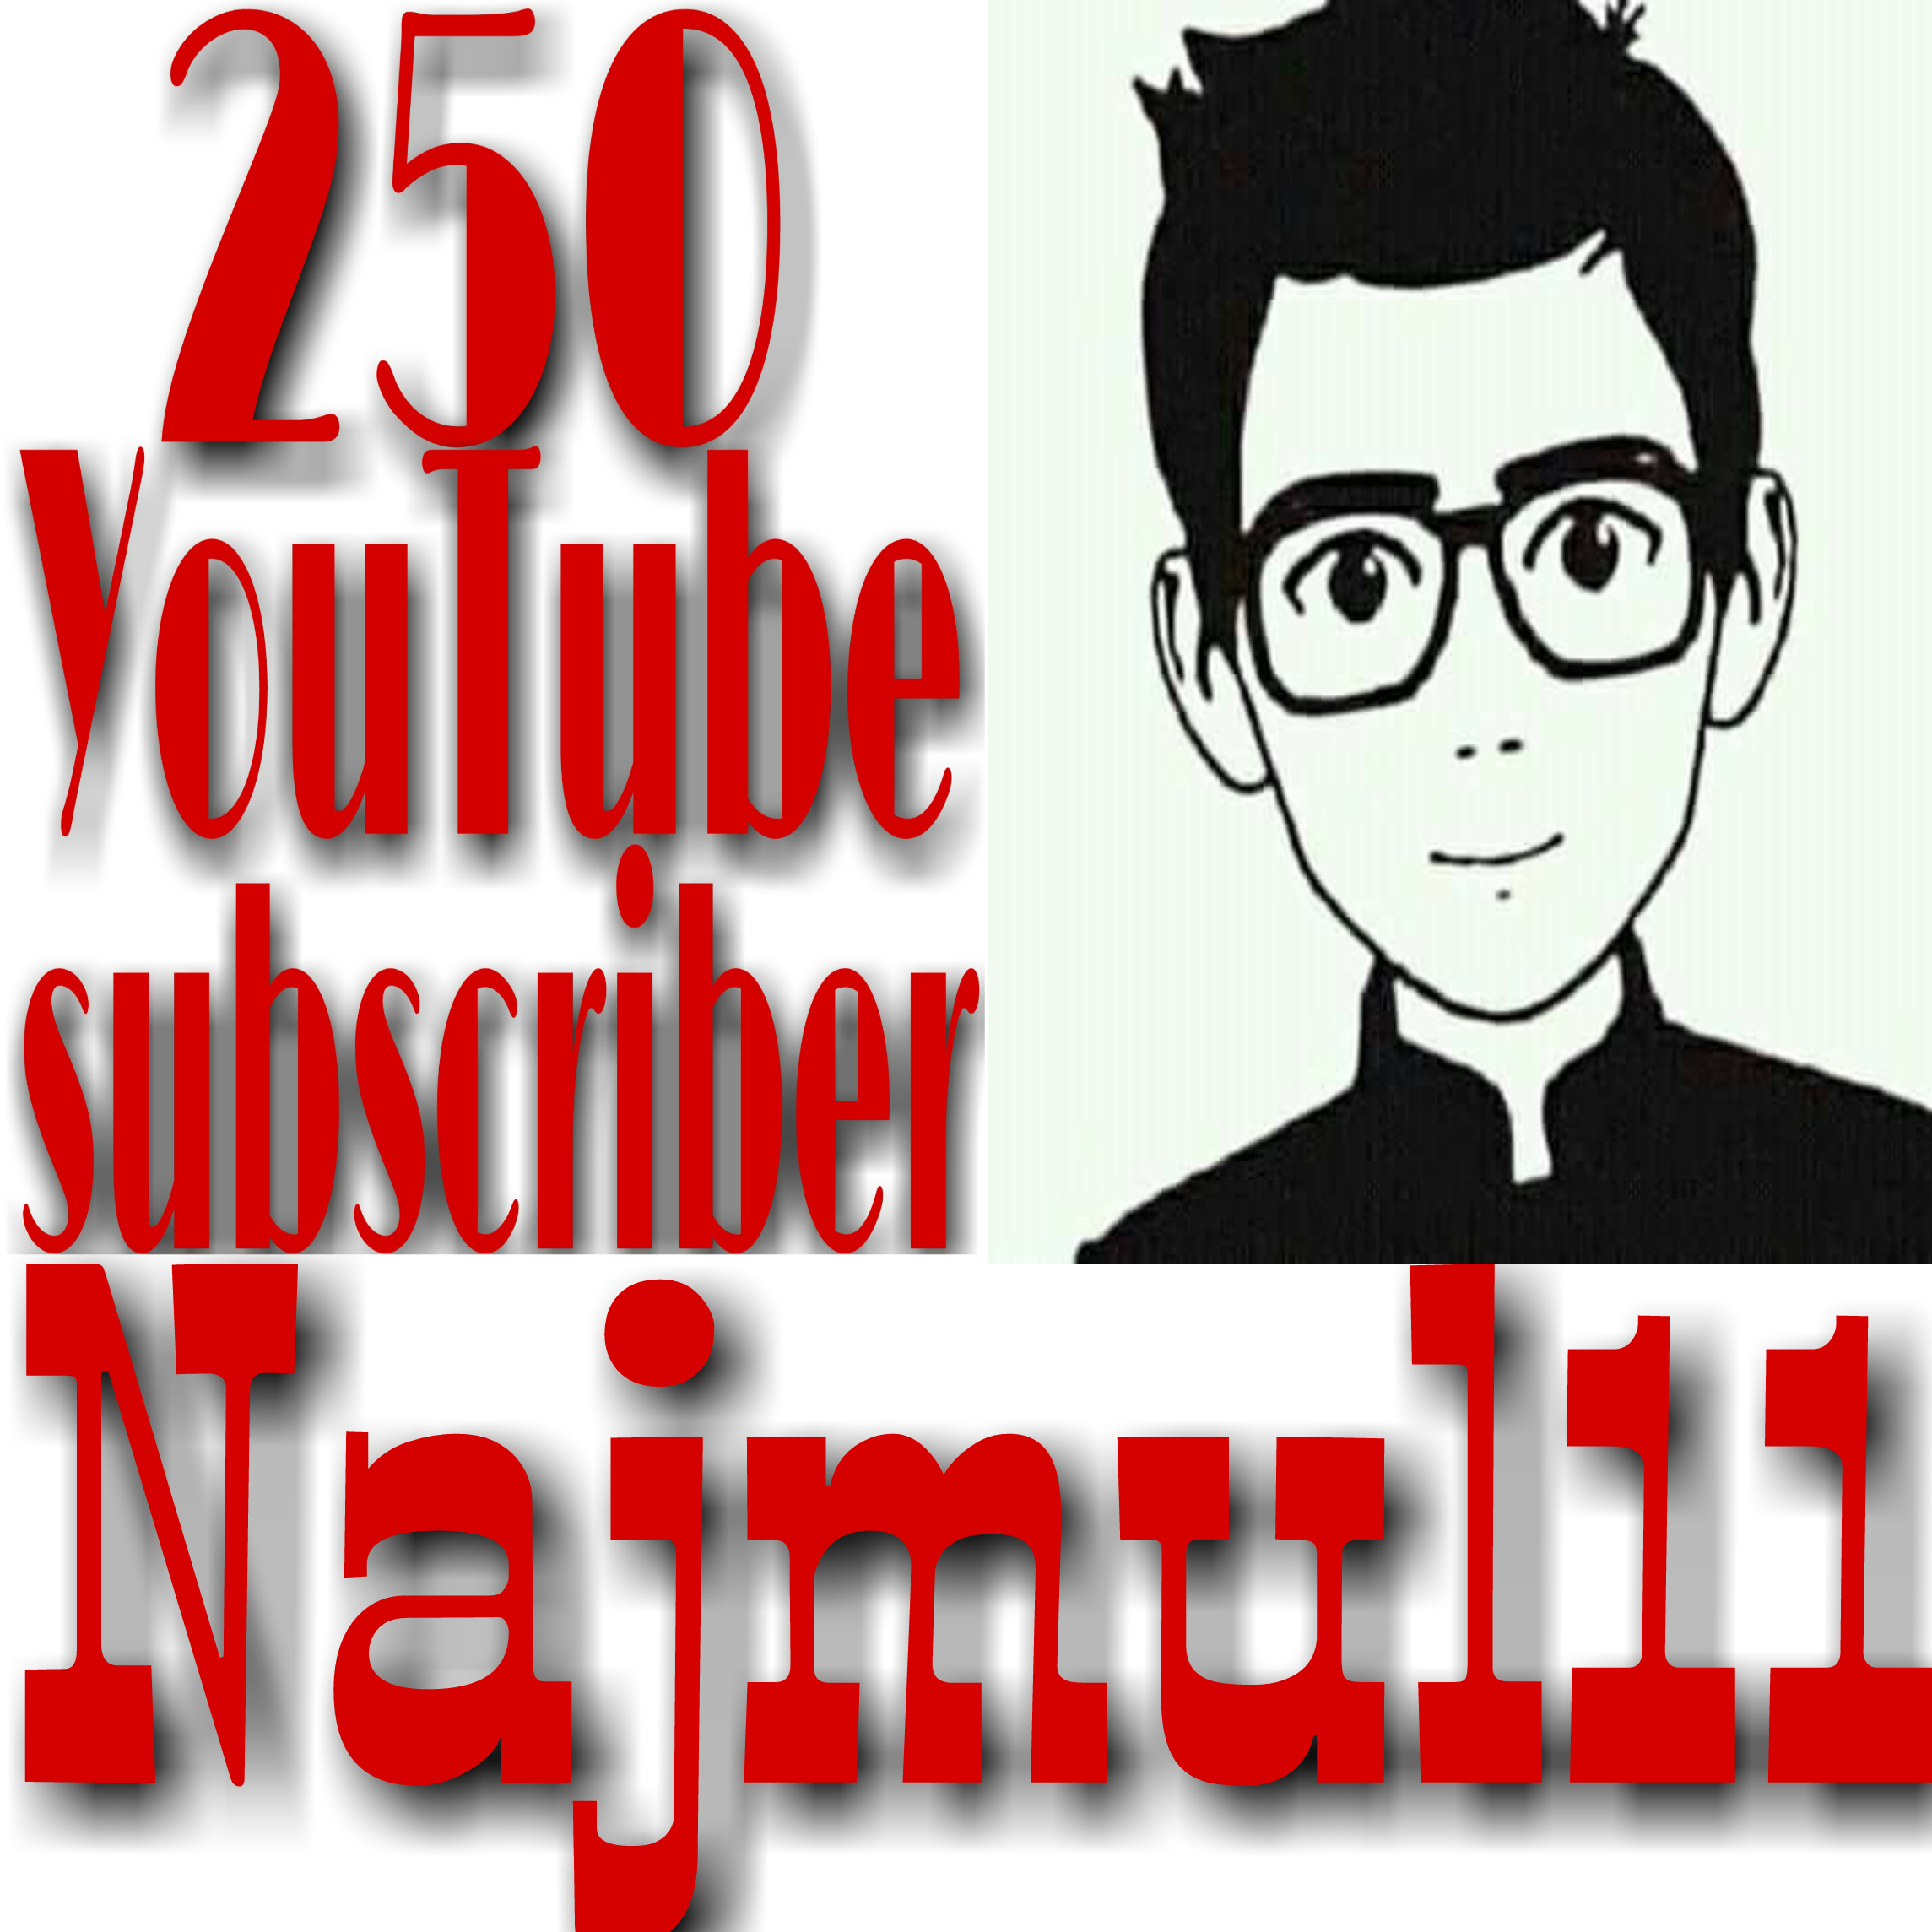 Non-Drop GUARANTEED 250+ YouTube channel subscriber just 3 hours complete